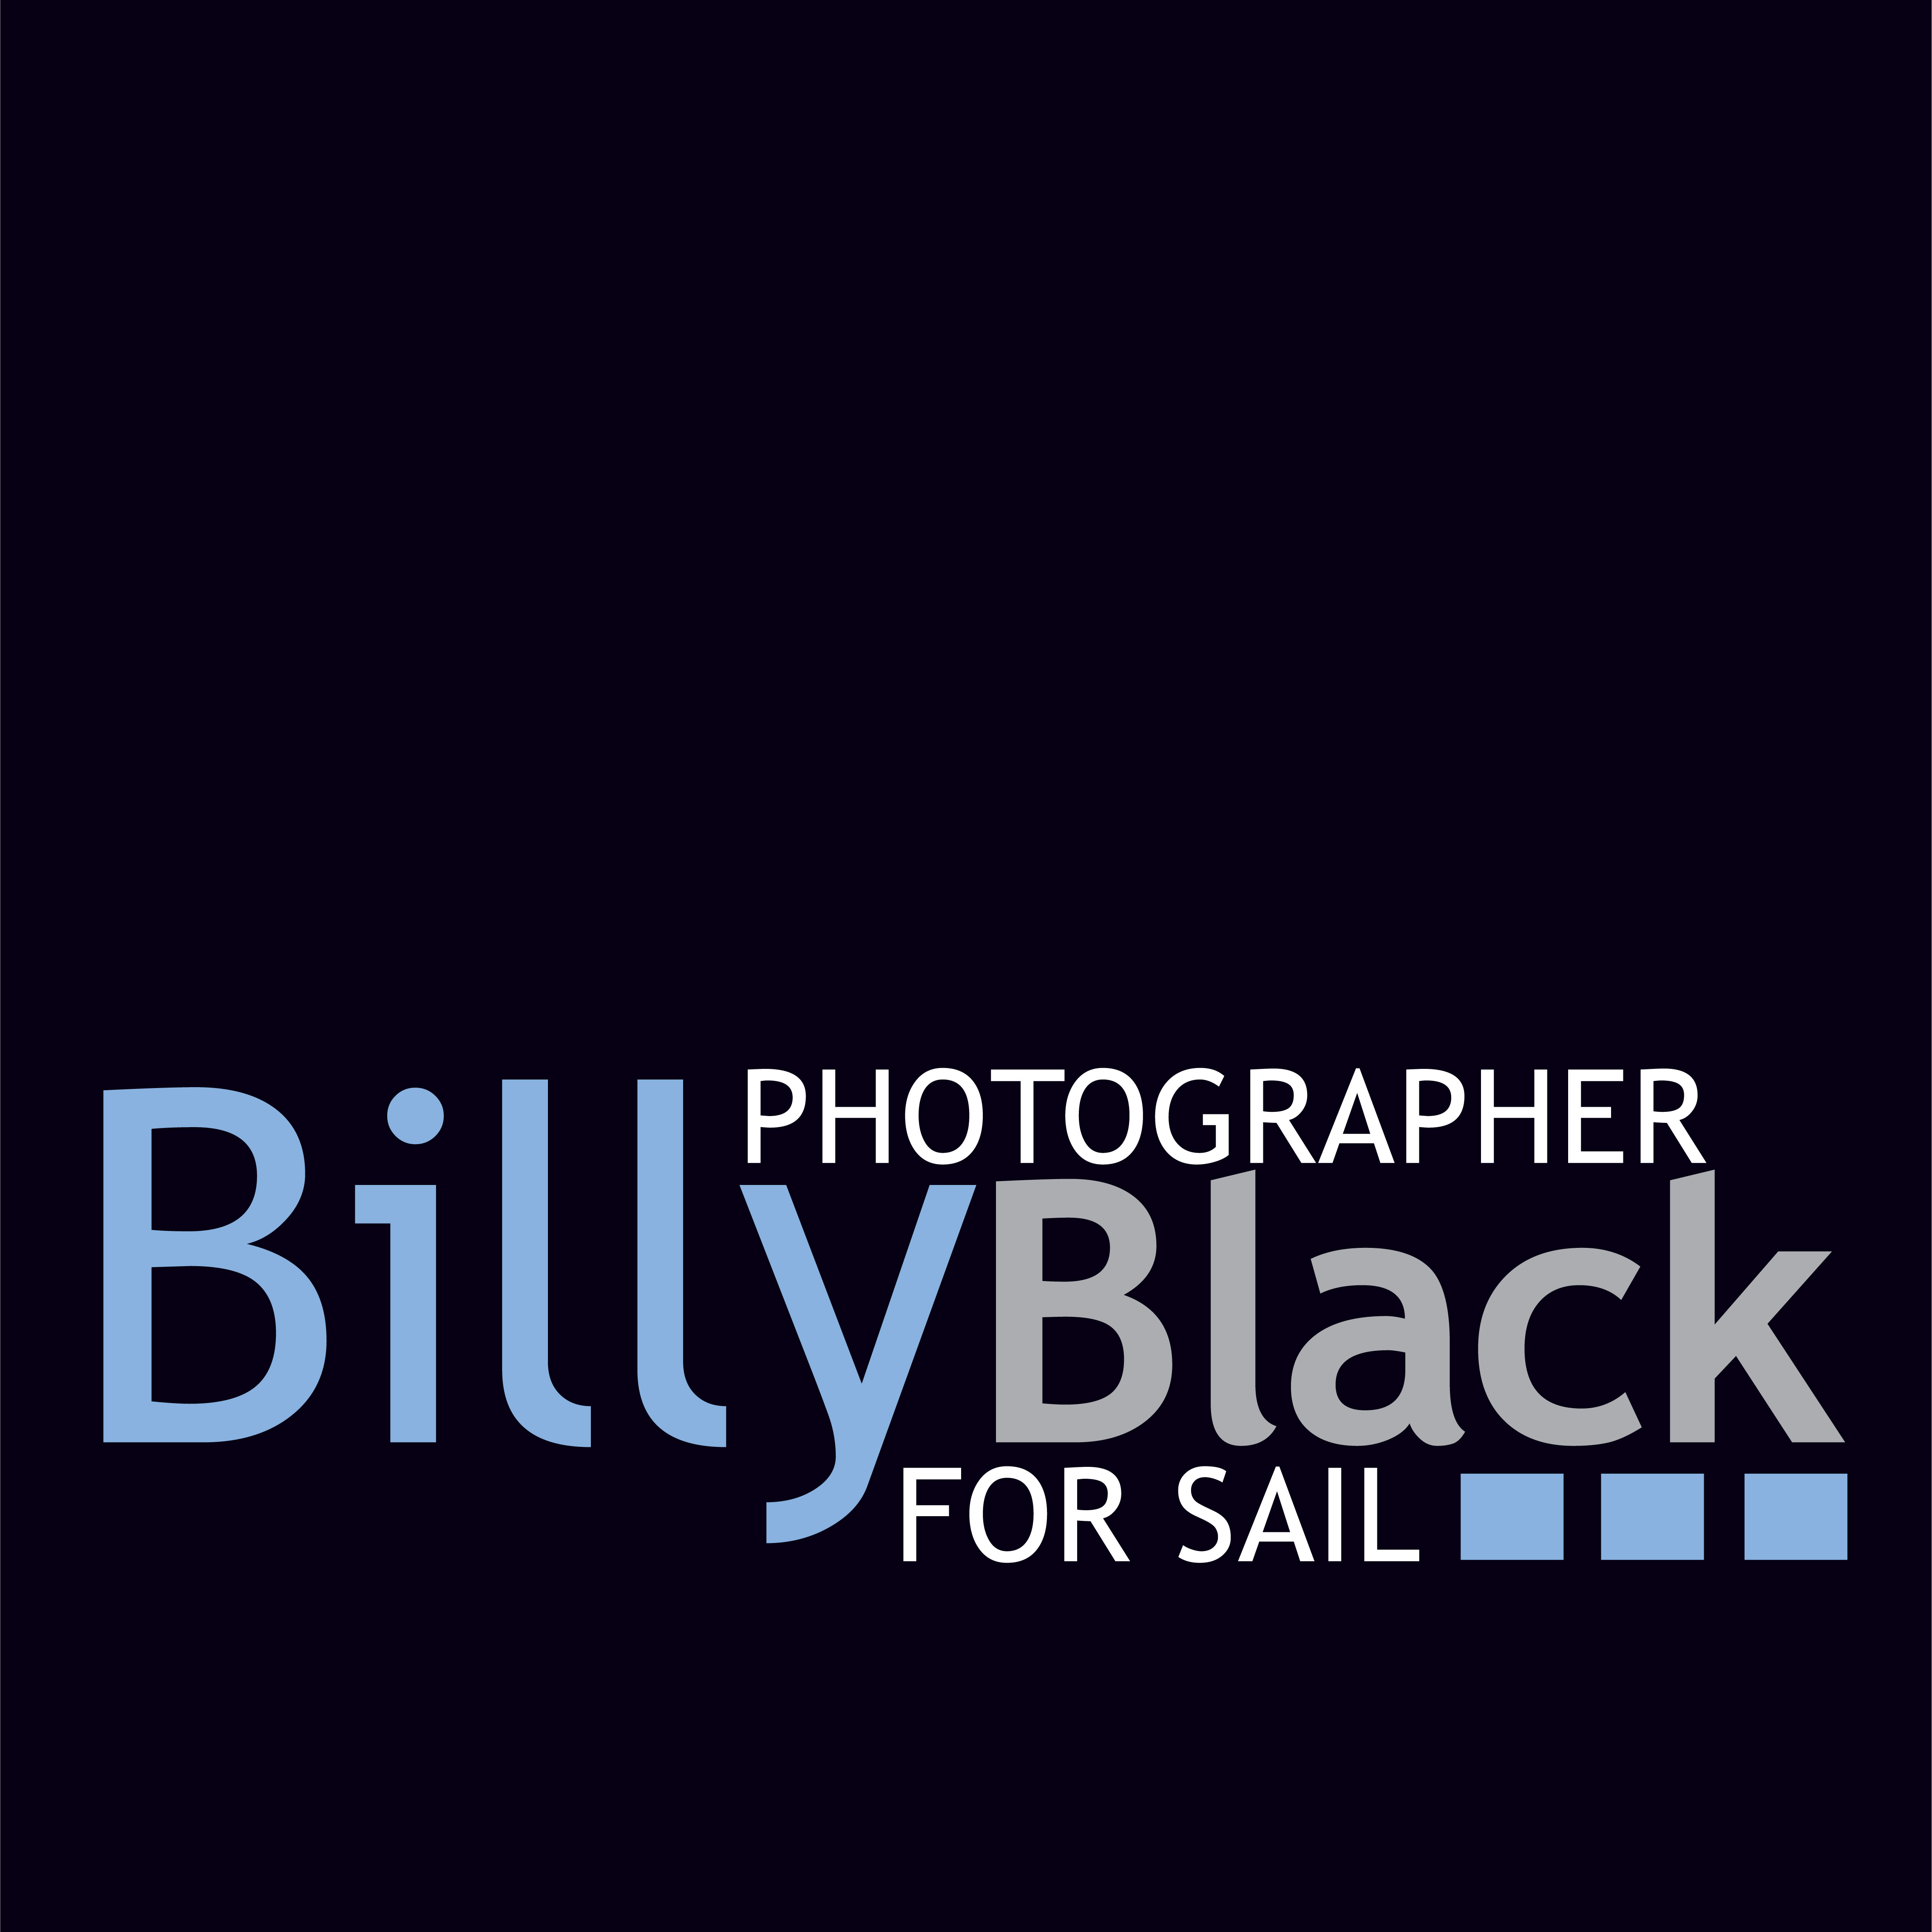 Billy Black Photography